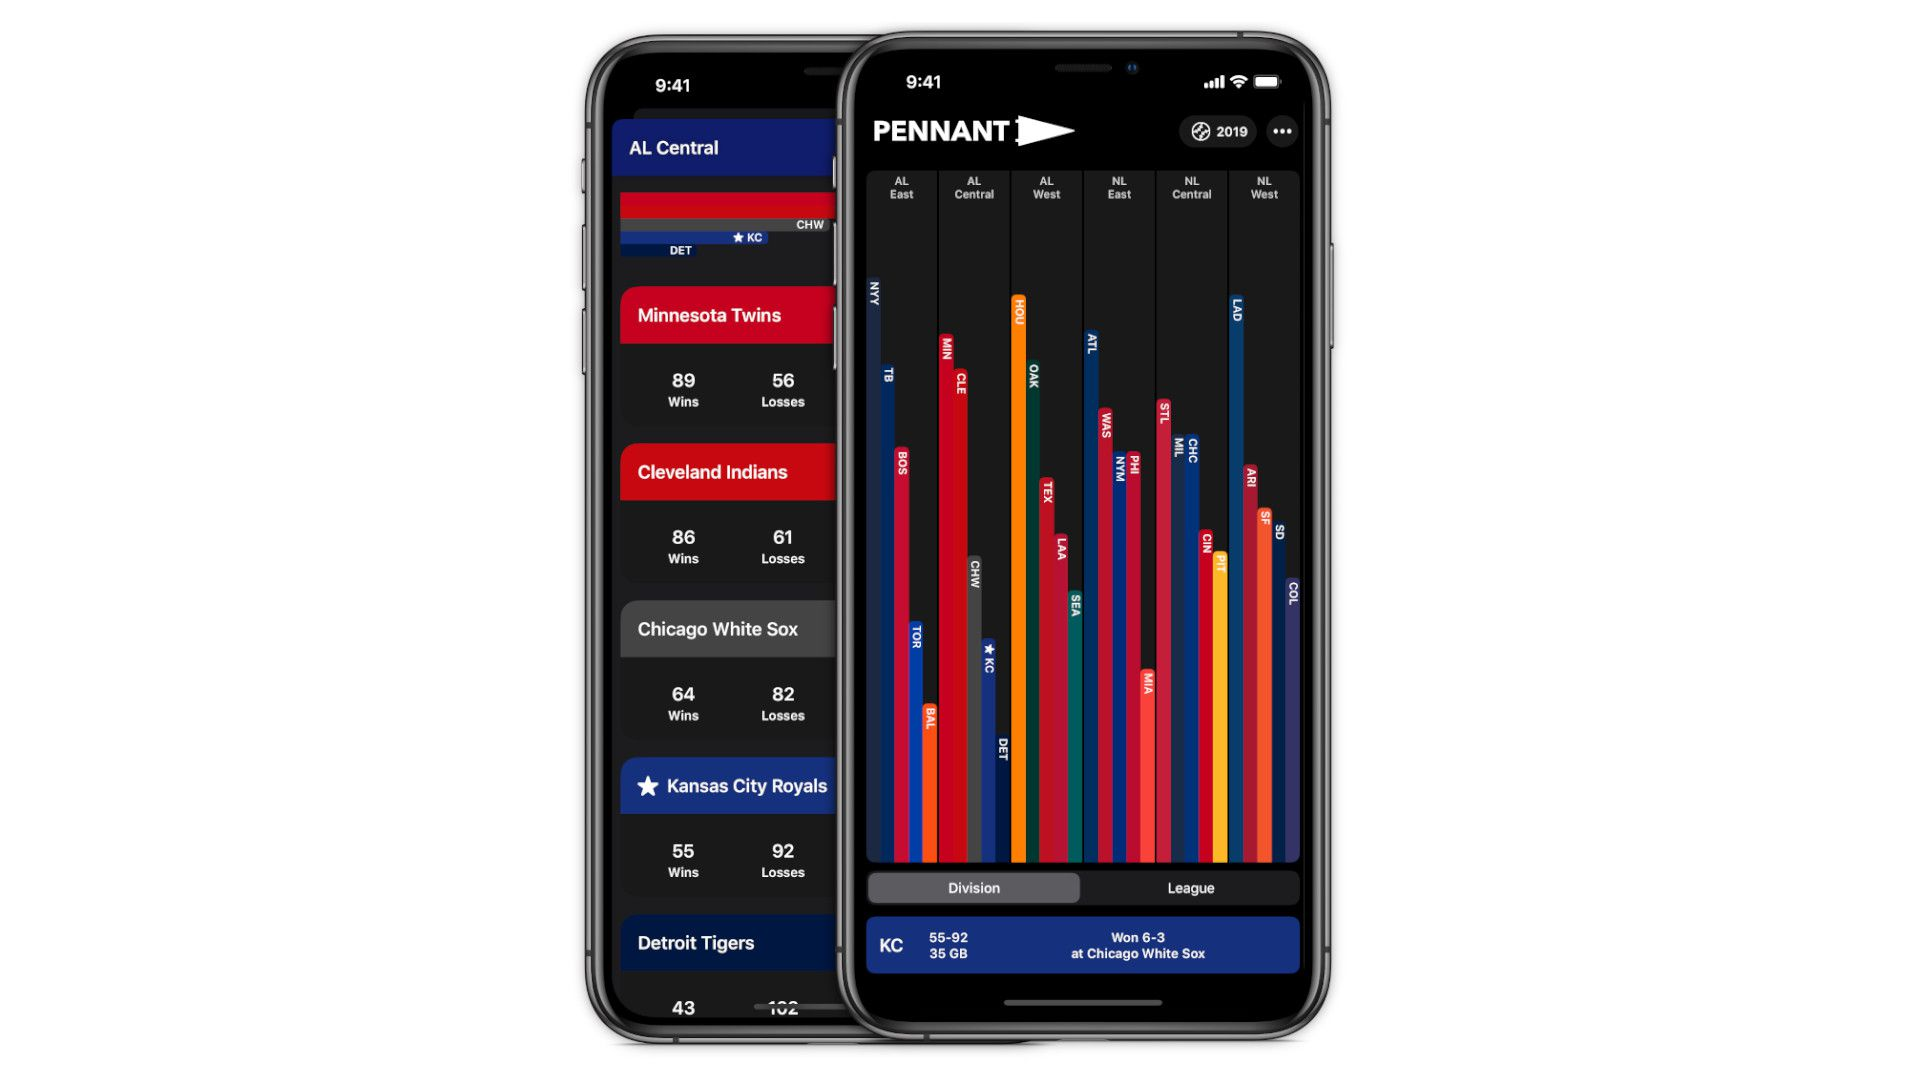 The Pennant app gives you sports standings at a glance